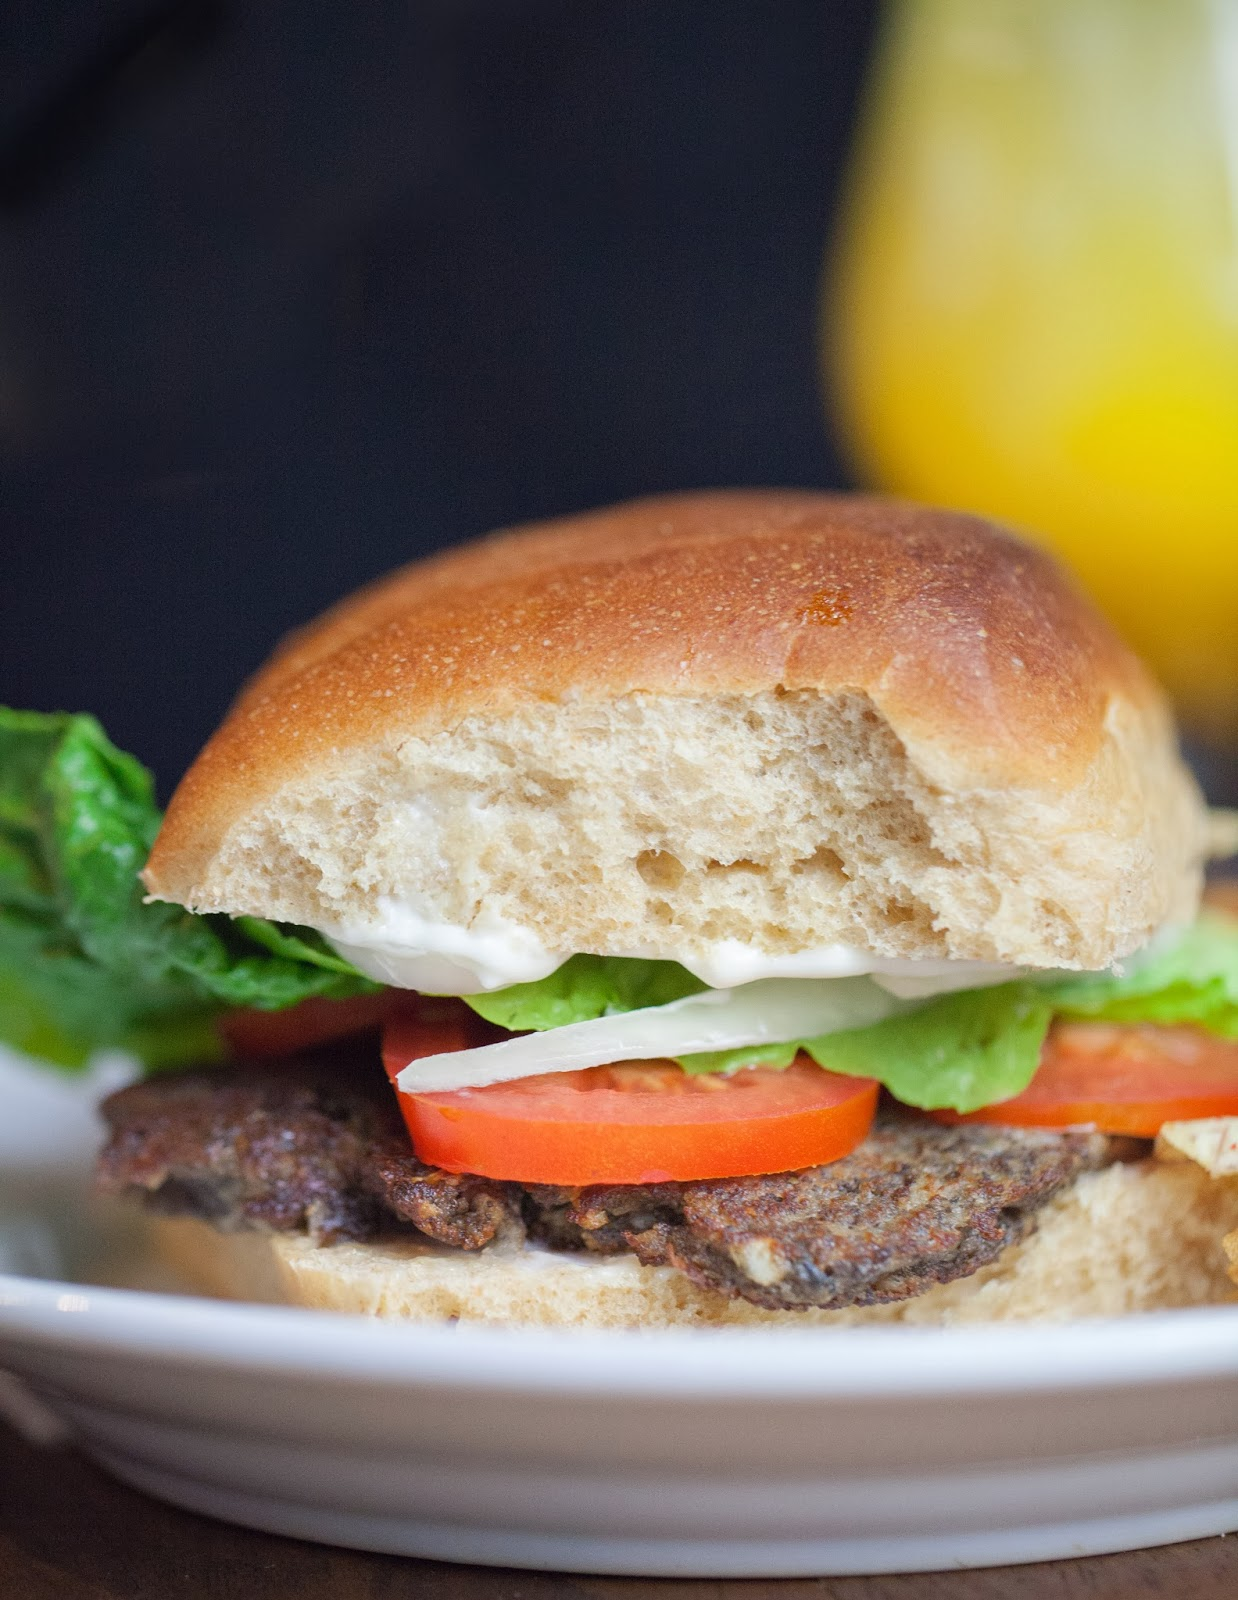 Single-serving mushroom burger recipe